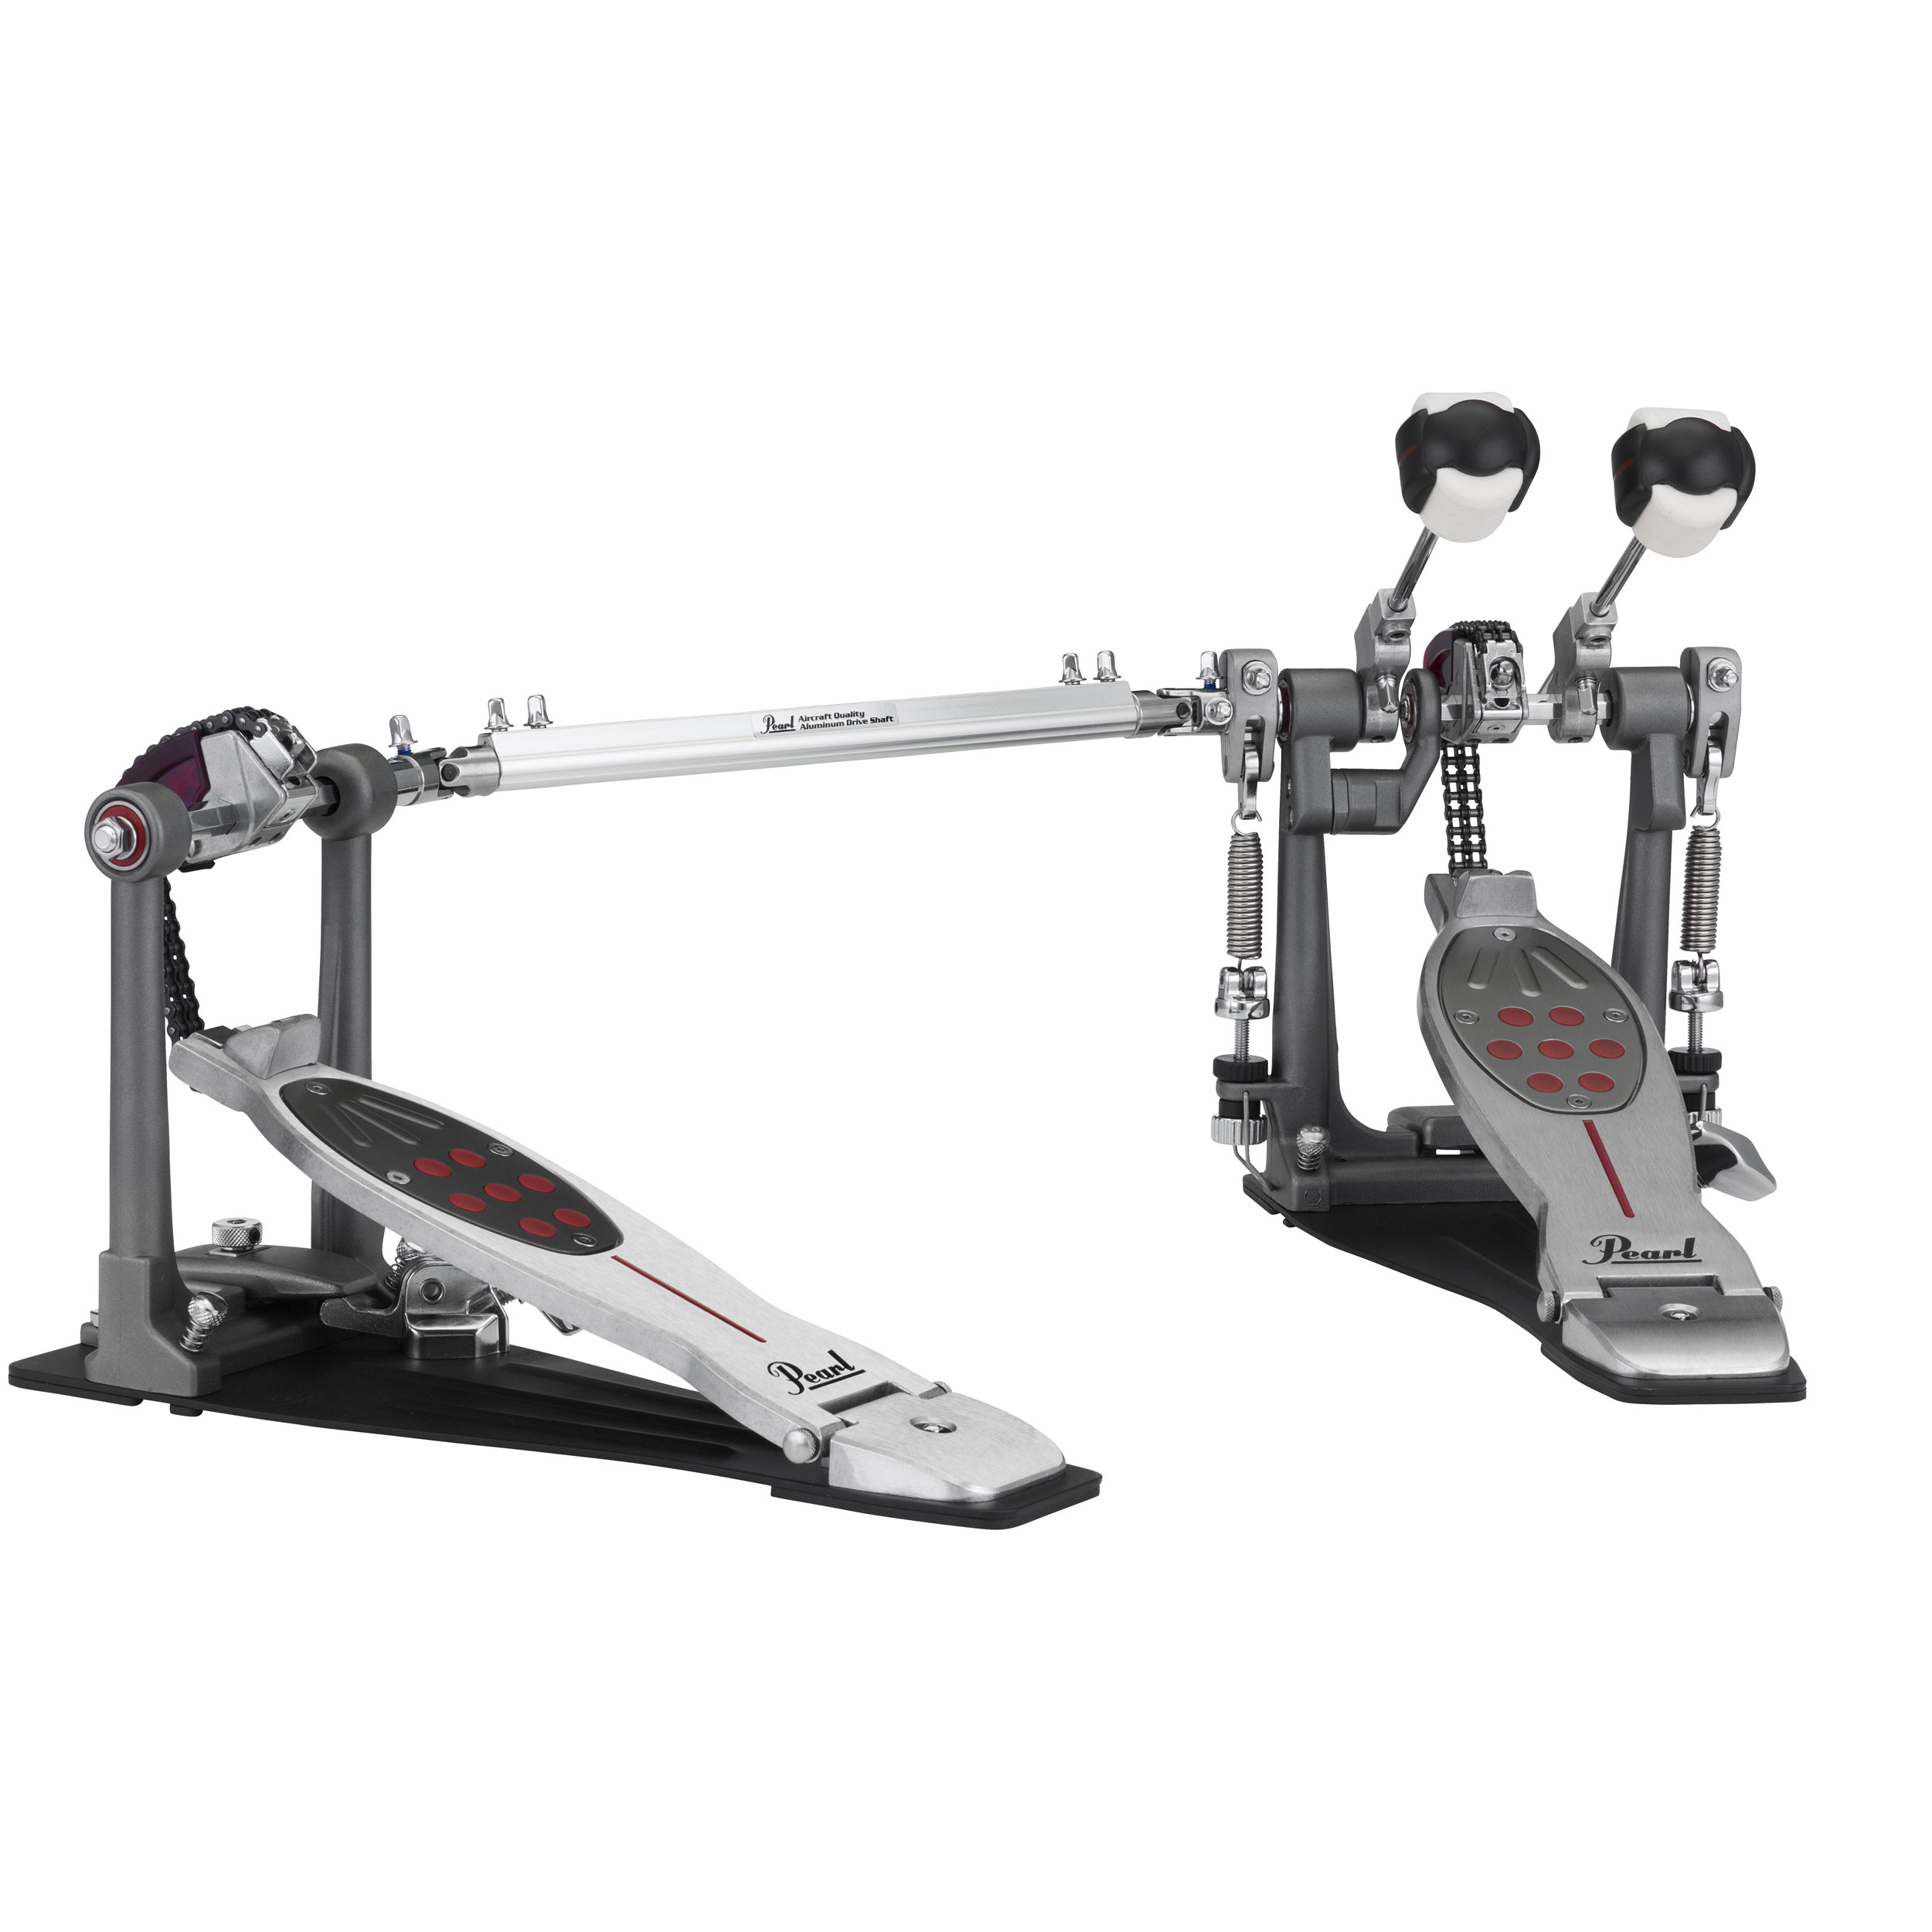 Pearl Eliminator Redline Chain Drive Double Bass Pedal with Case